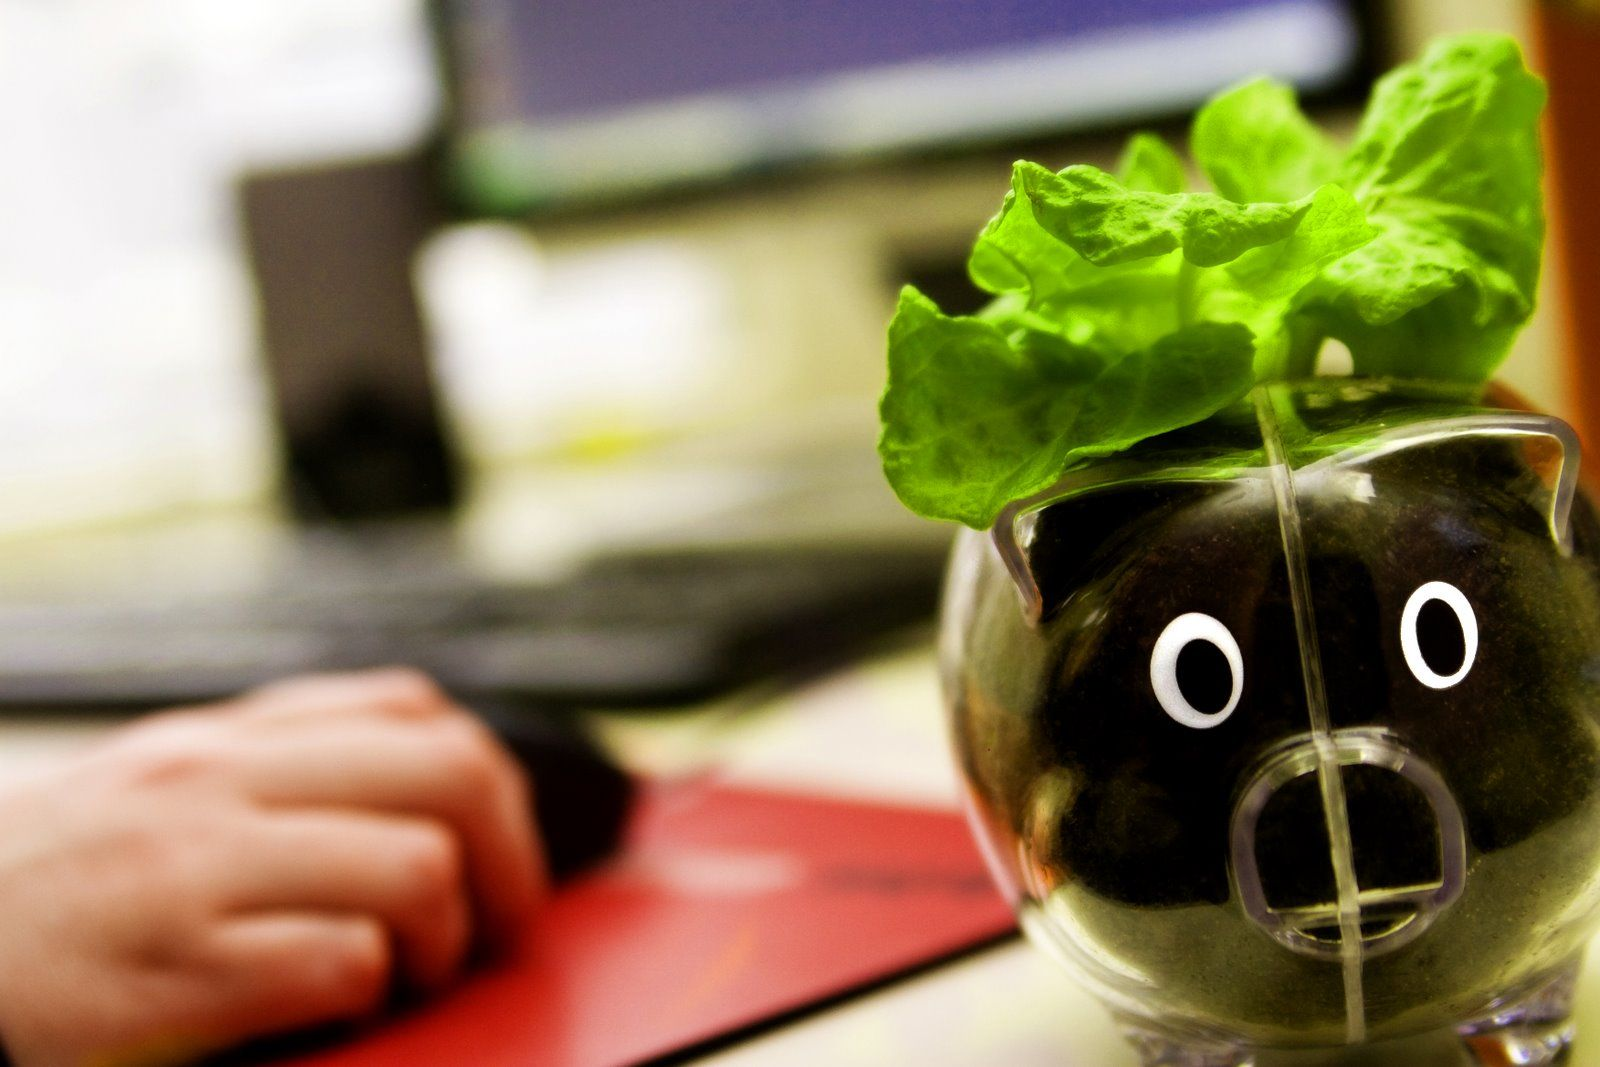 cute and healthy - grow lettuce at work